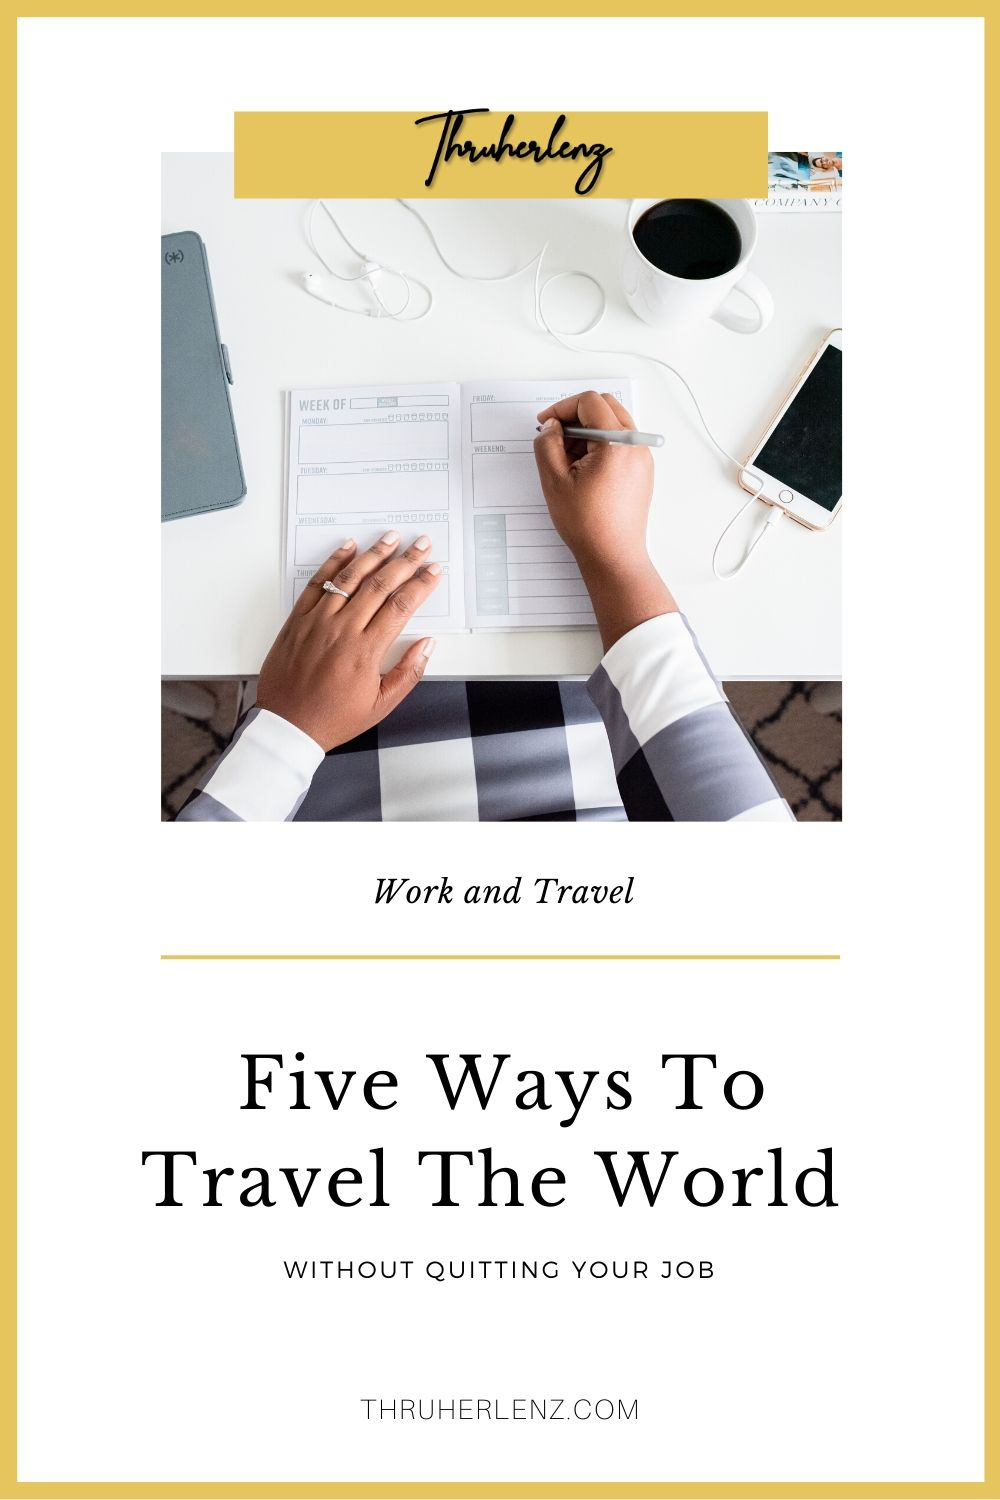 Work and Explore: Five Ways To Travel The World Without Quitting Your Job